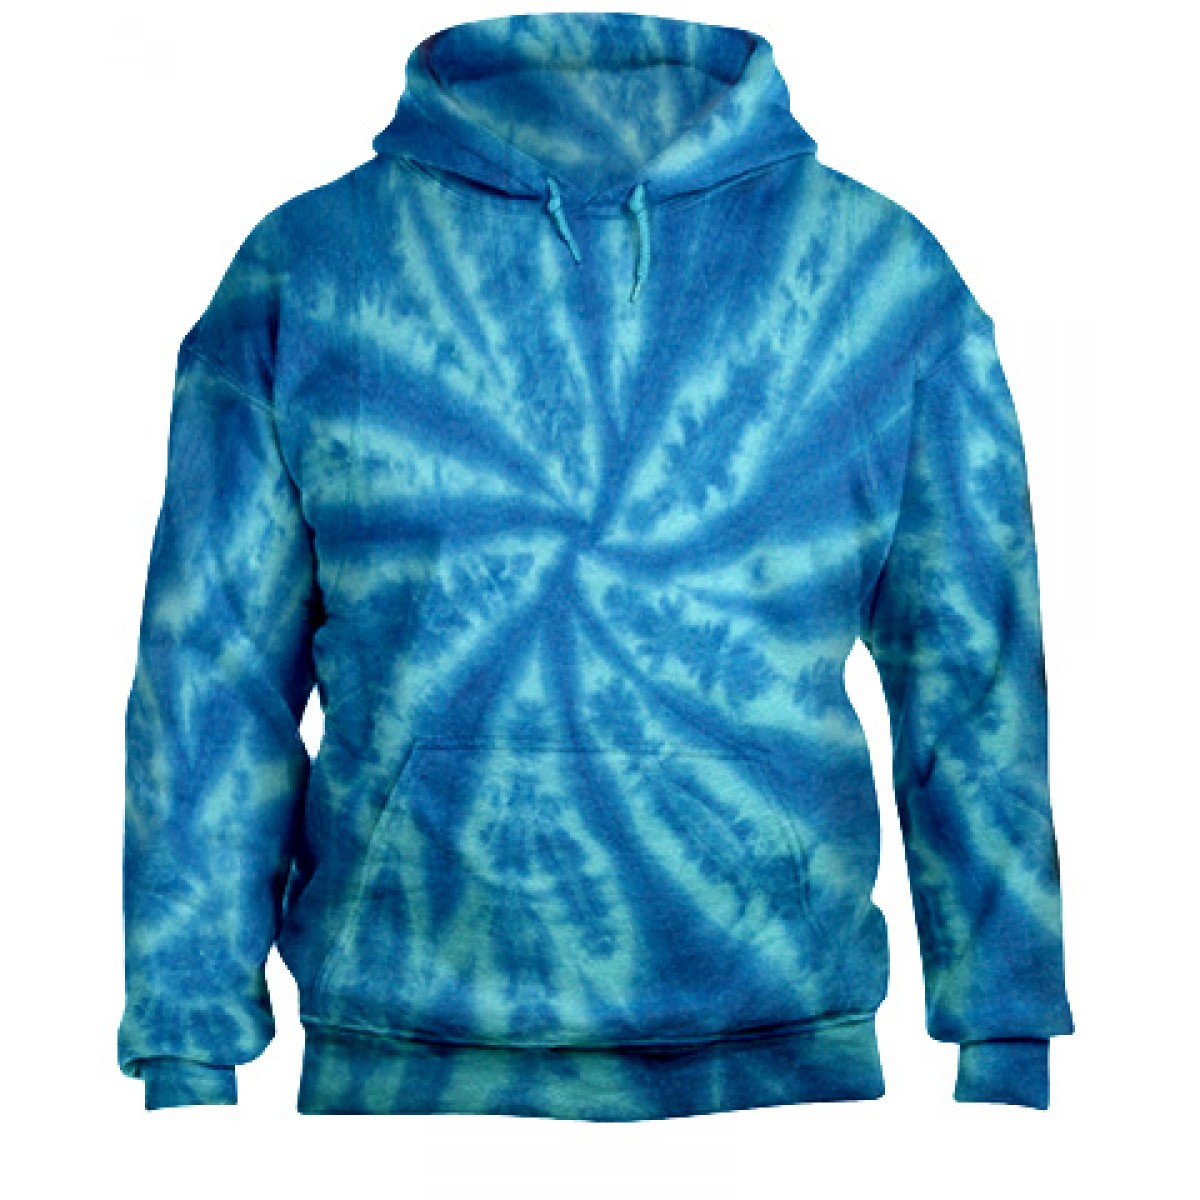 Tie-Dye Blue Pullover Hooded Sweatshirt